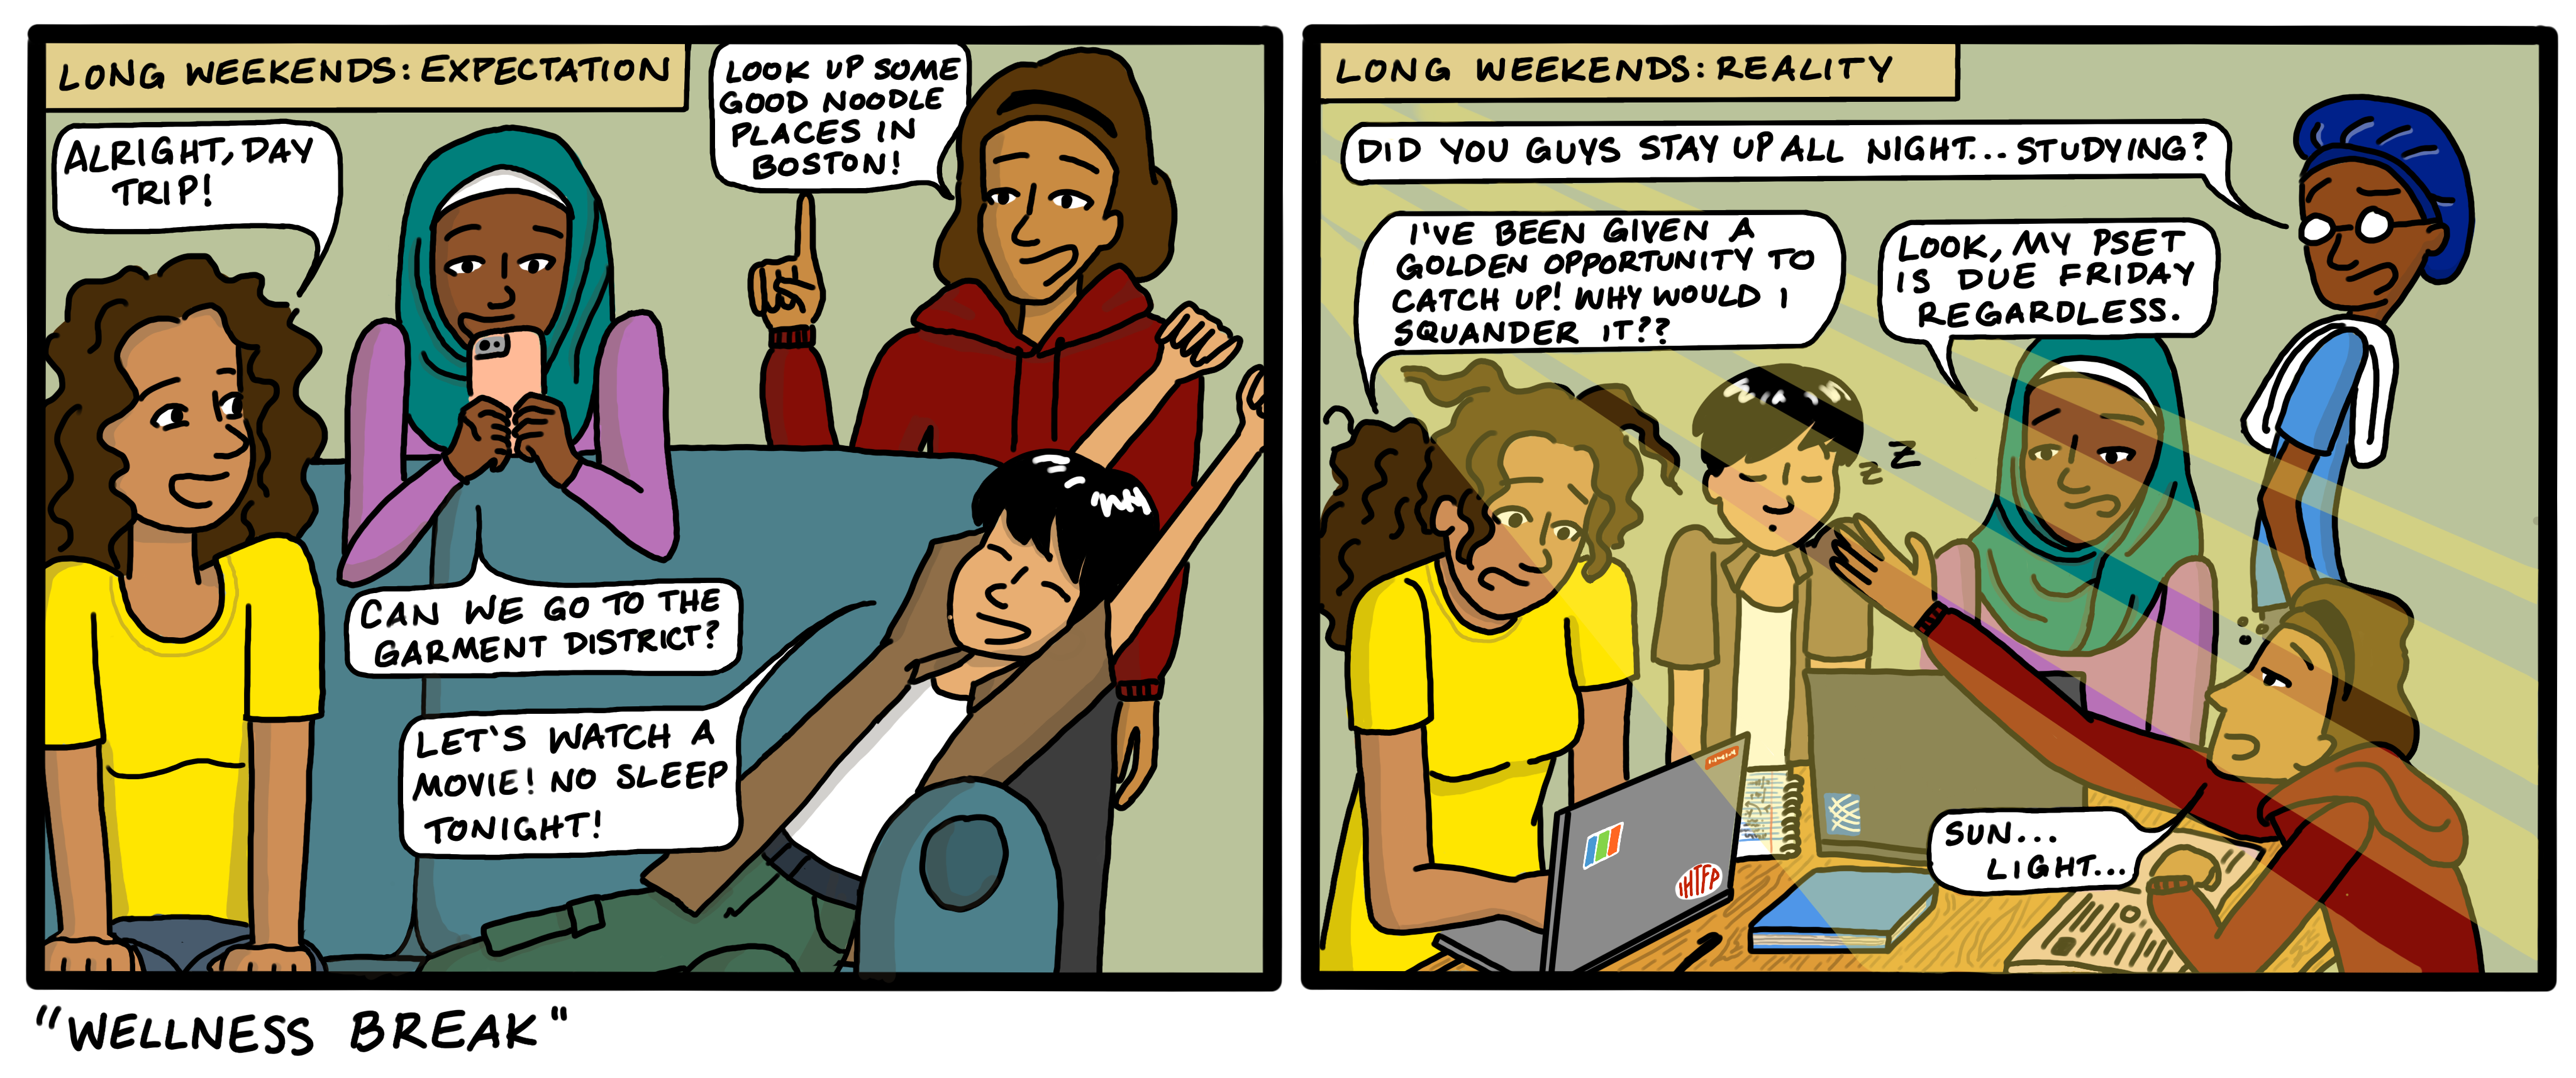 wellness break cartoon with students talking about how they're burned out